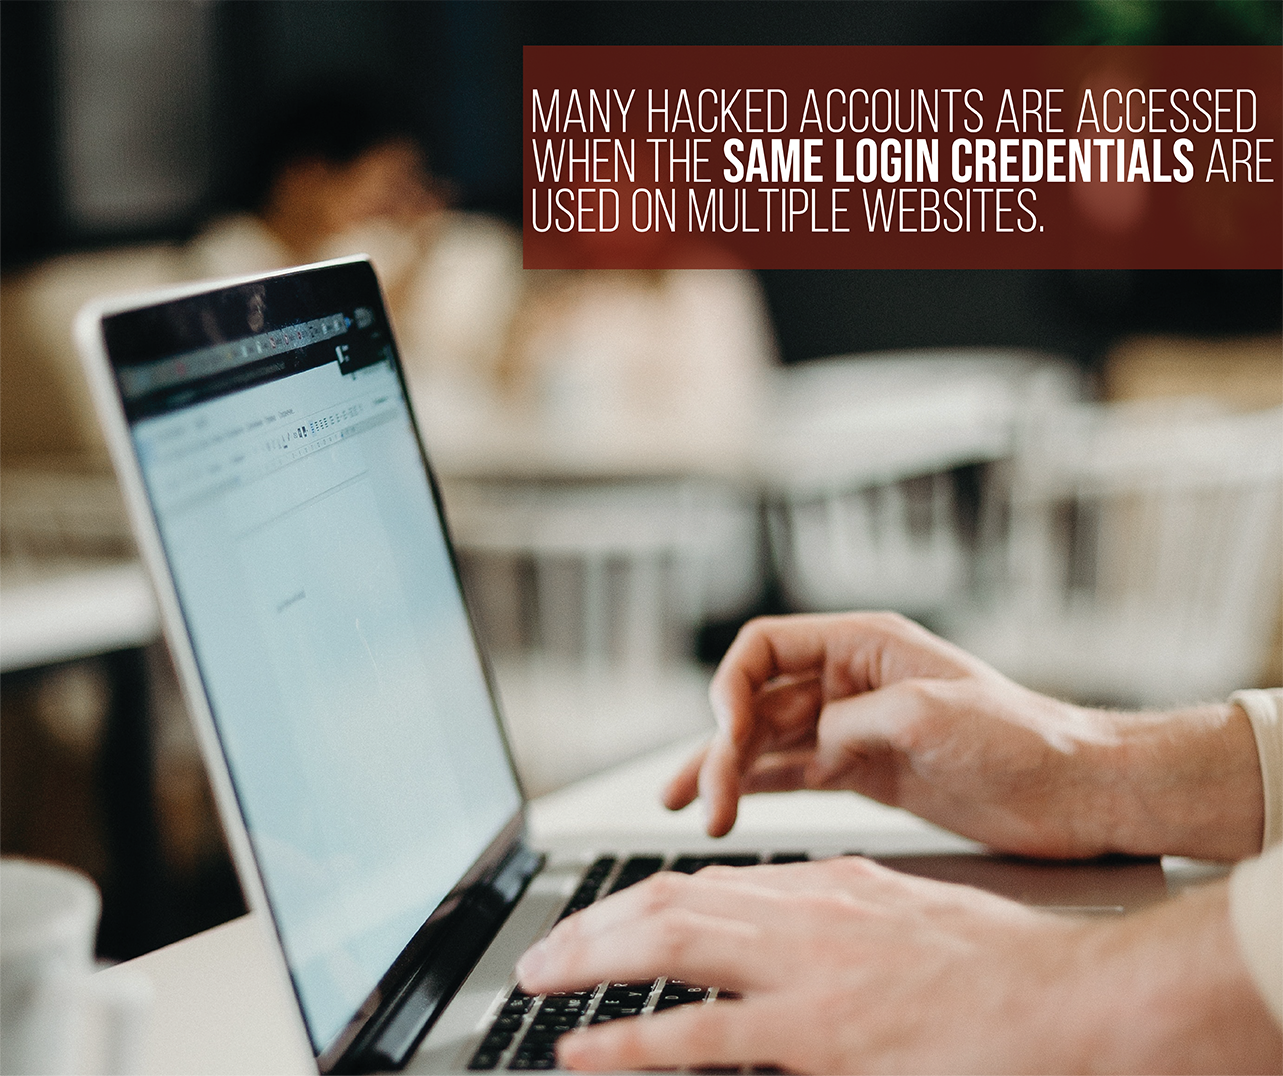 credential stuffing means using the same login information for multiple sites